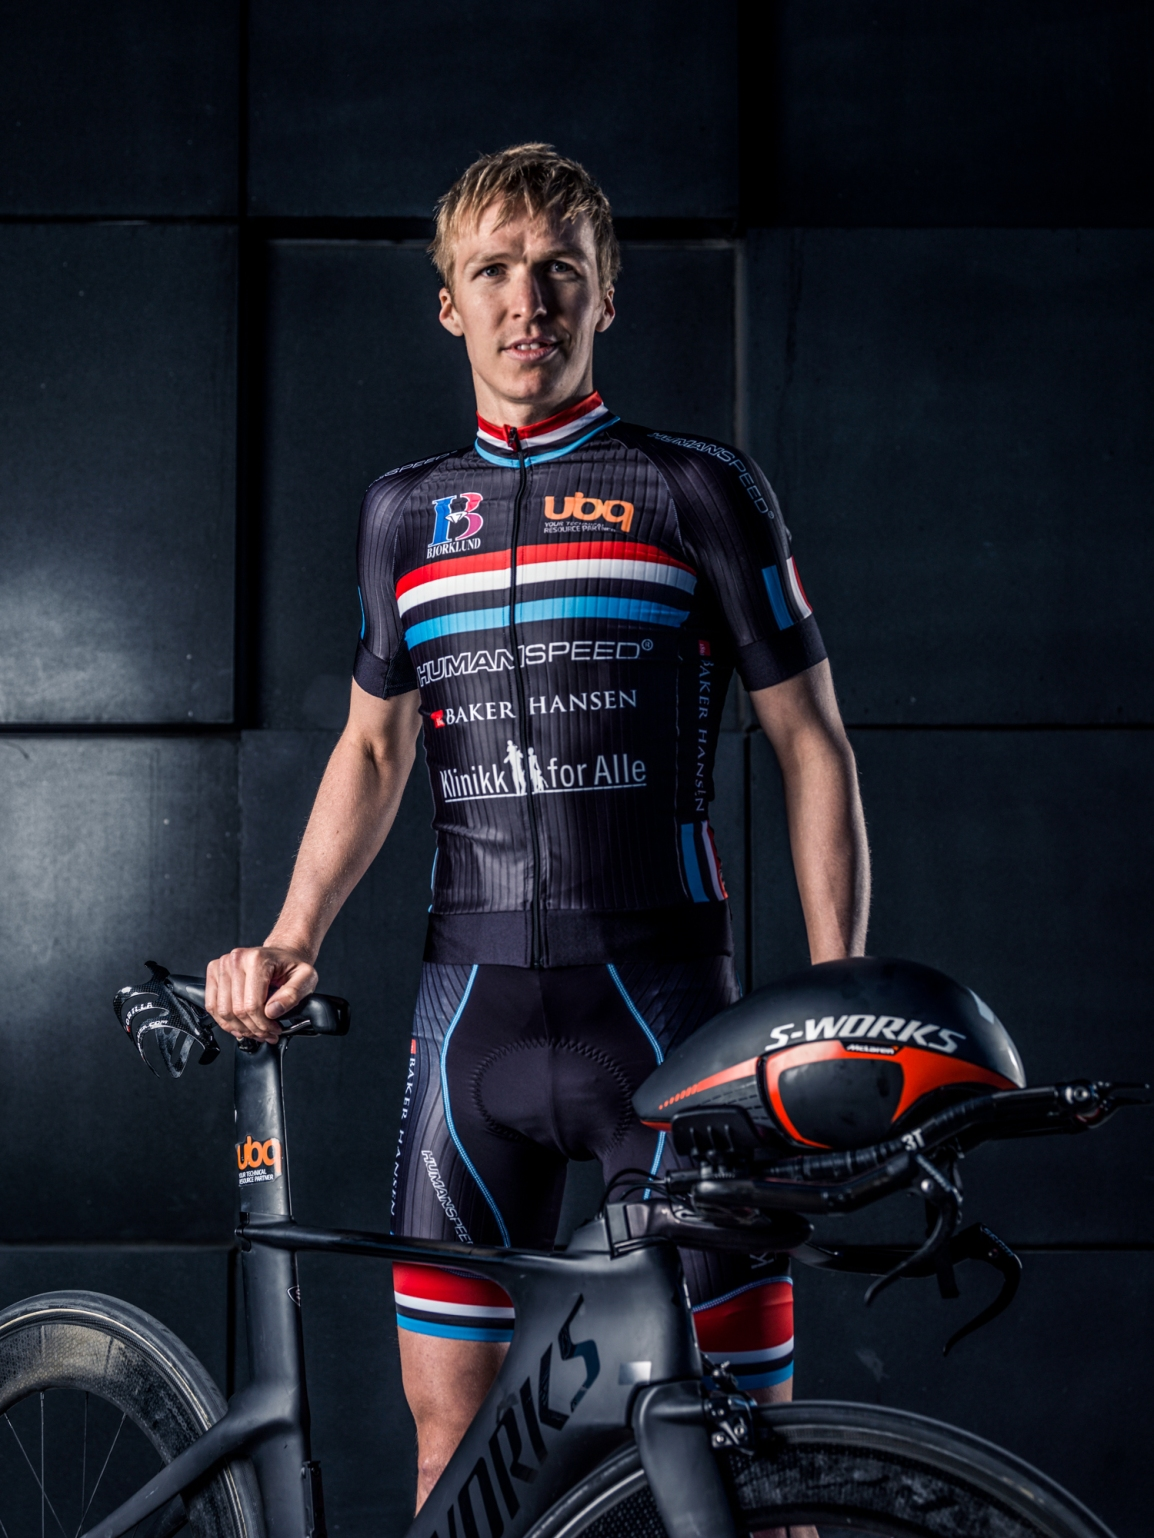 Triallan - Allan Hovda - Humanspeed - Aero - Stig Jarnes - Specialized Shiv - Black - Steath - Triathlon - S-works - Rudy Project